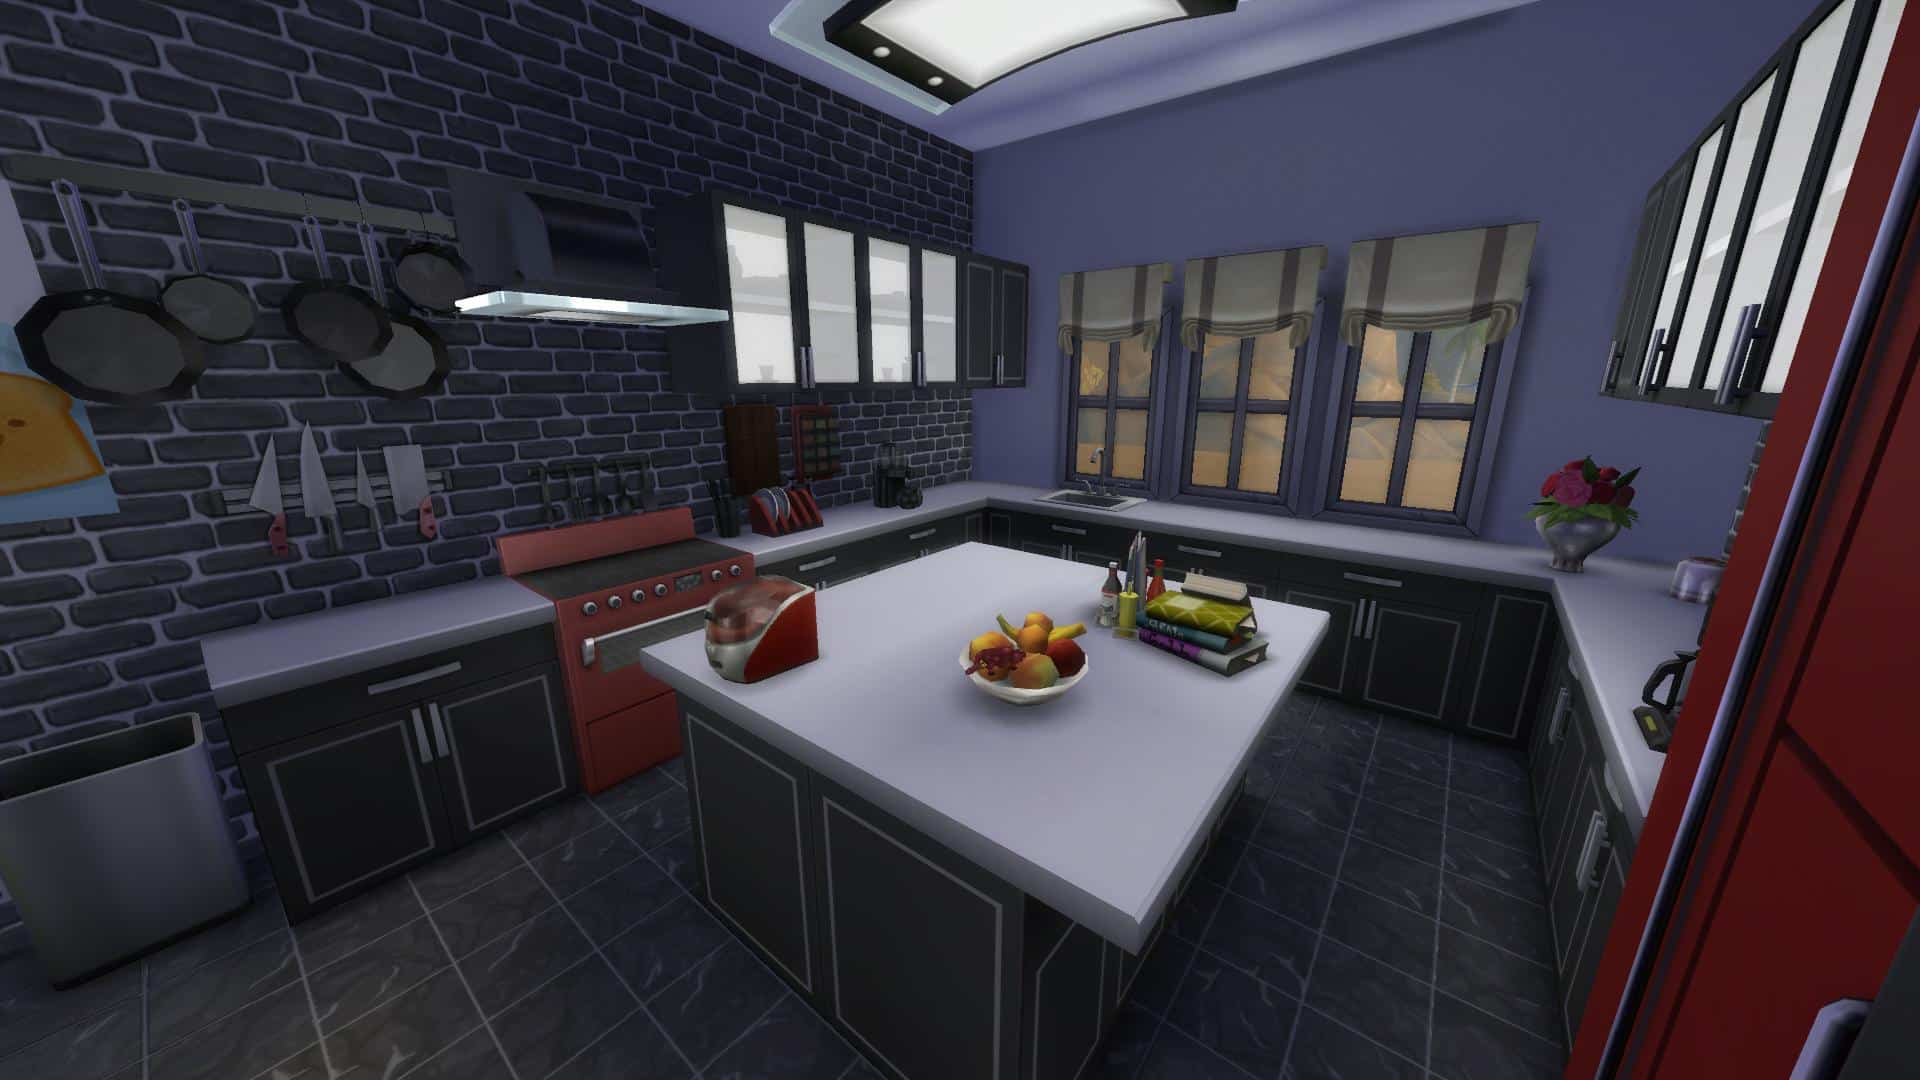 The Sims 4 Design Guide Modern Kitchen